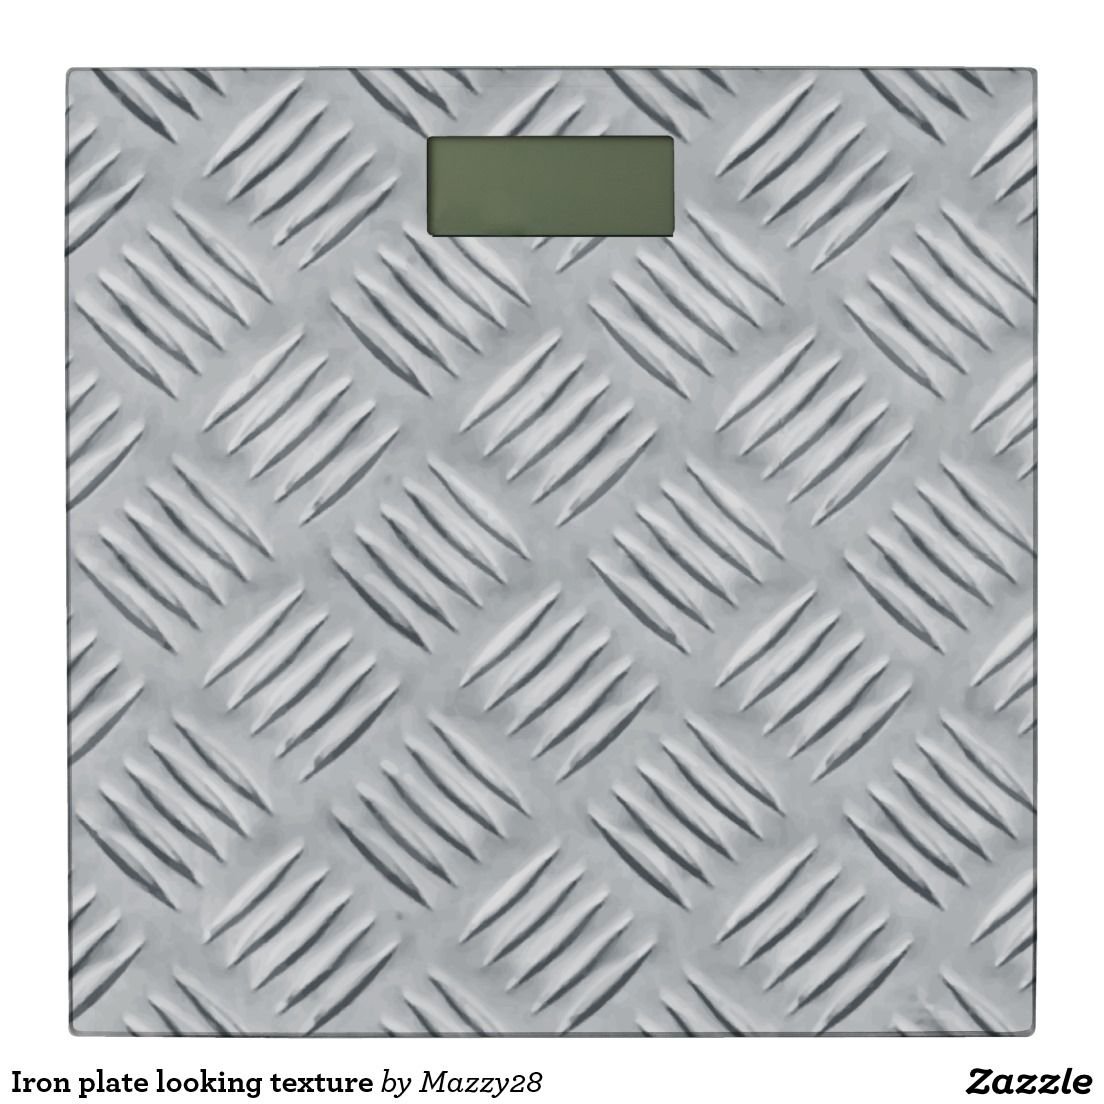 Iron plate looking texture bathroom scale